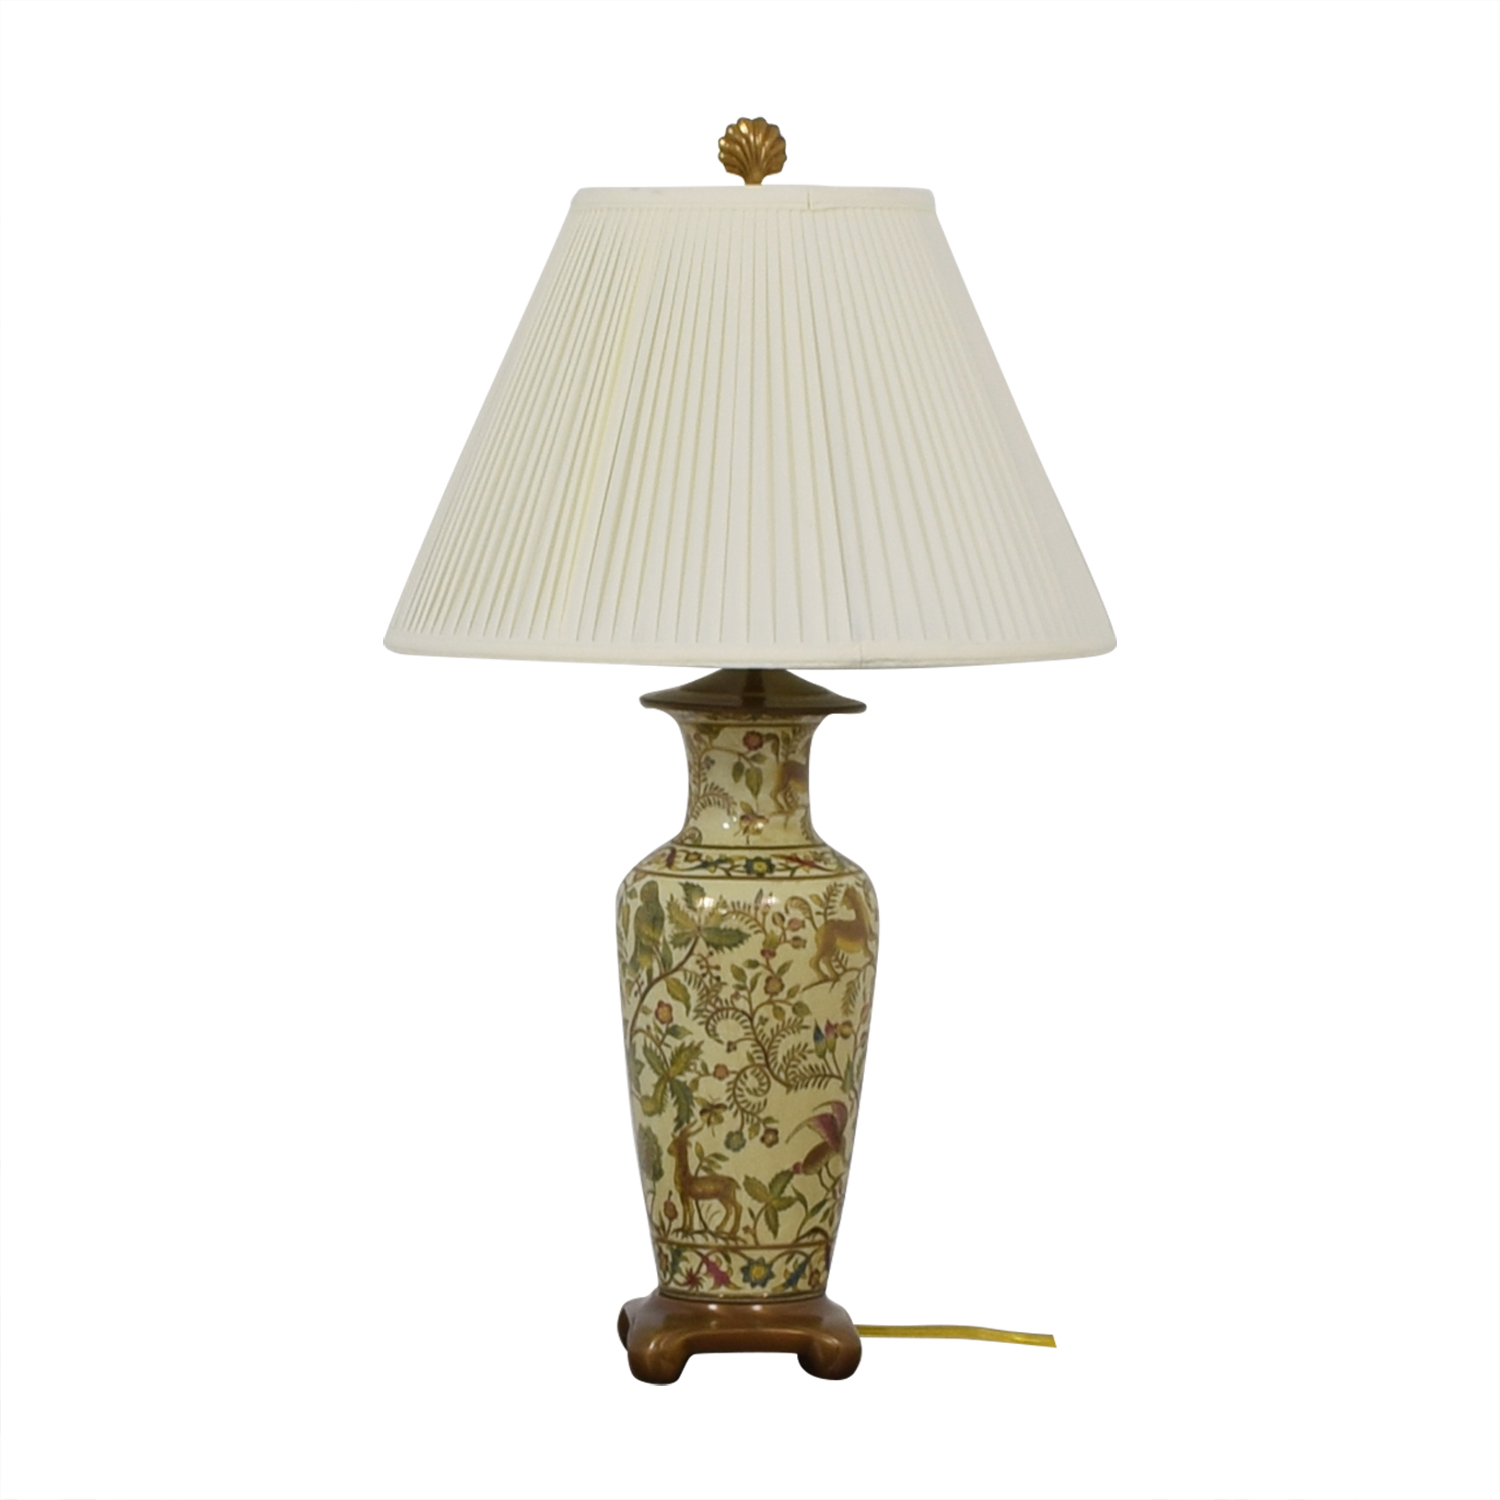 Painted Ceramic Table Lamp multi